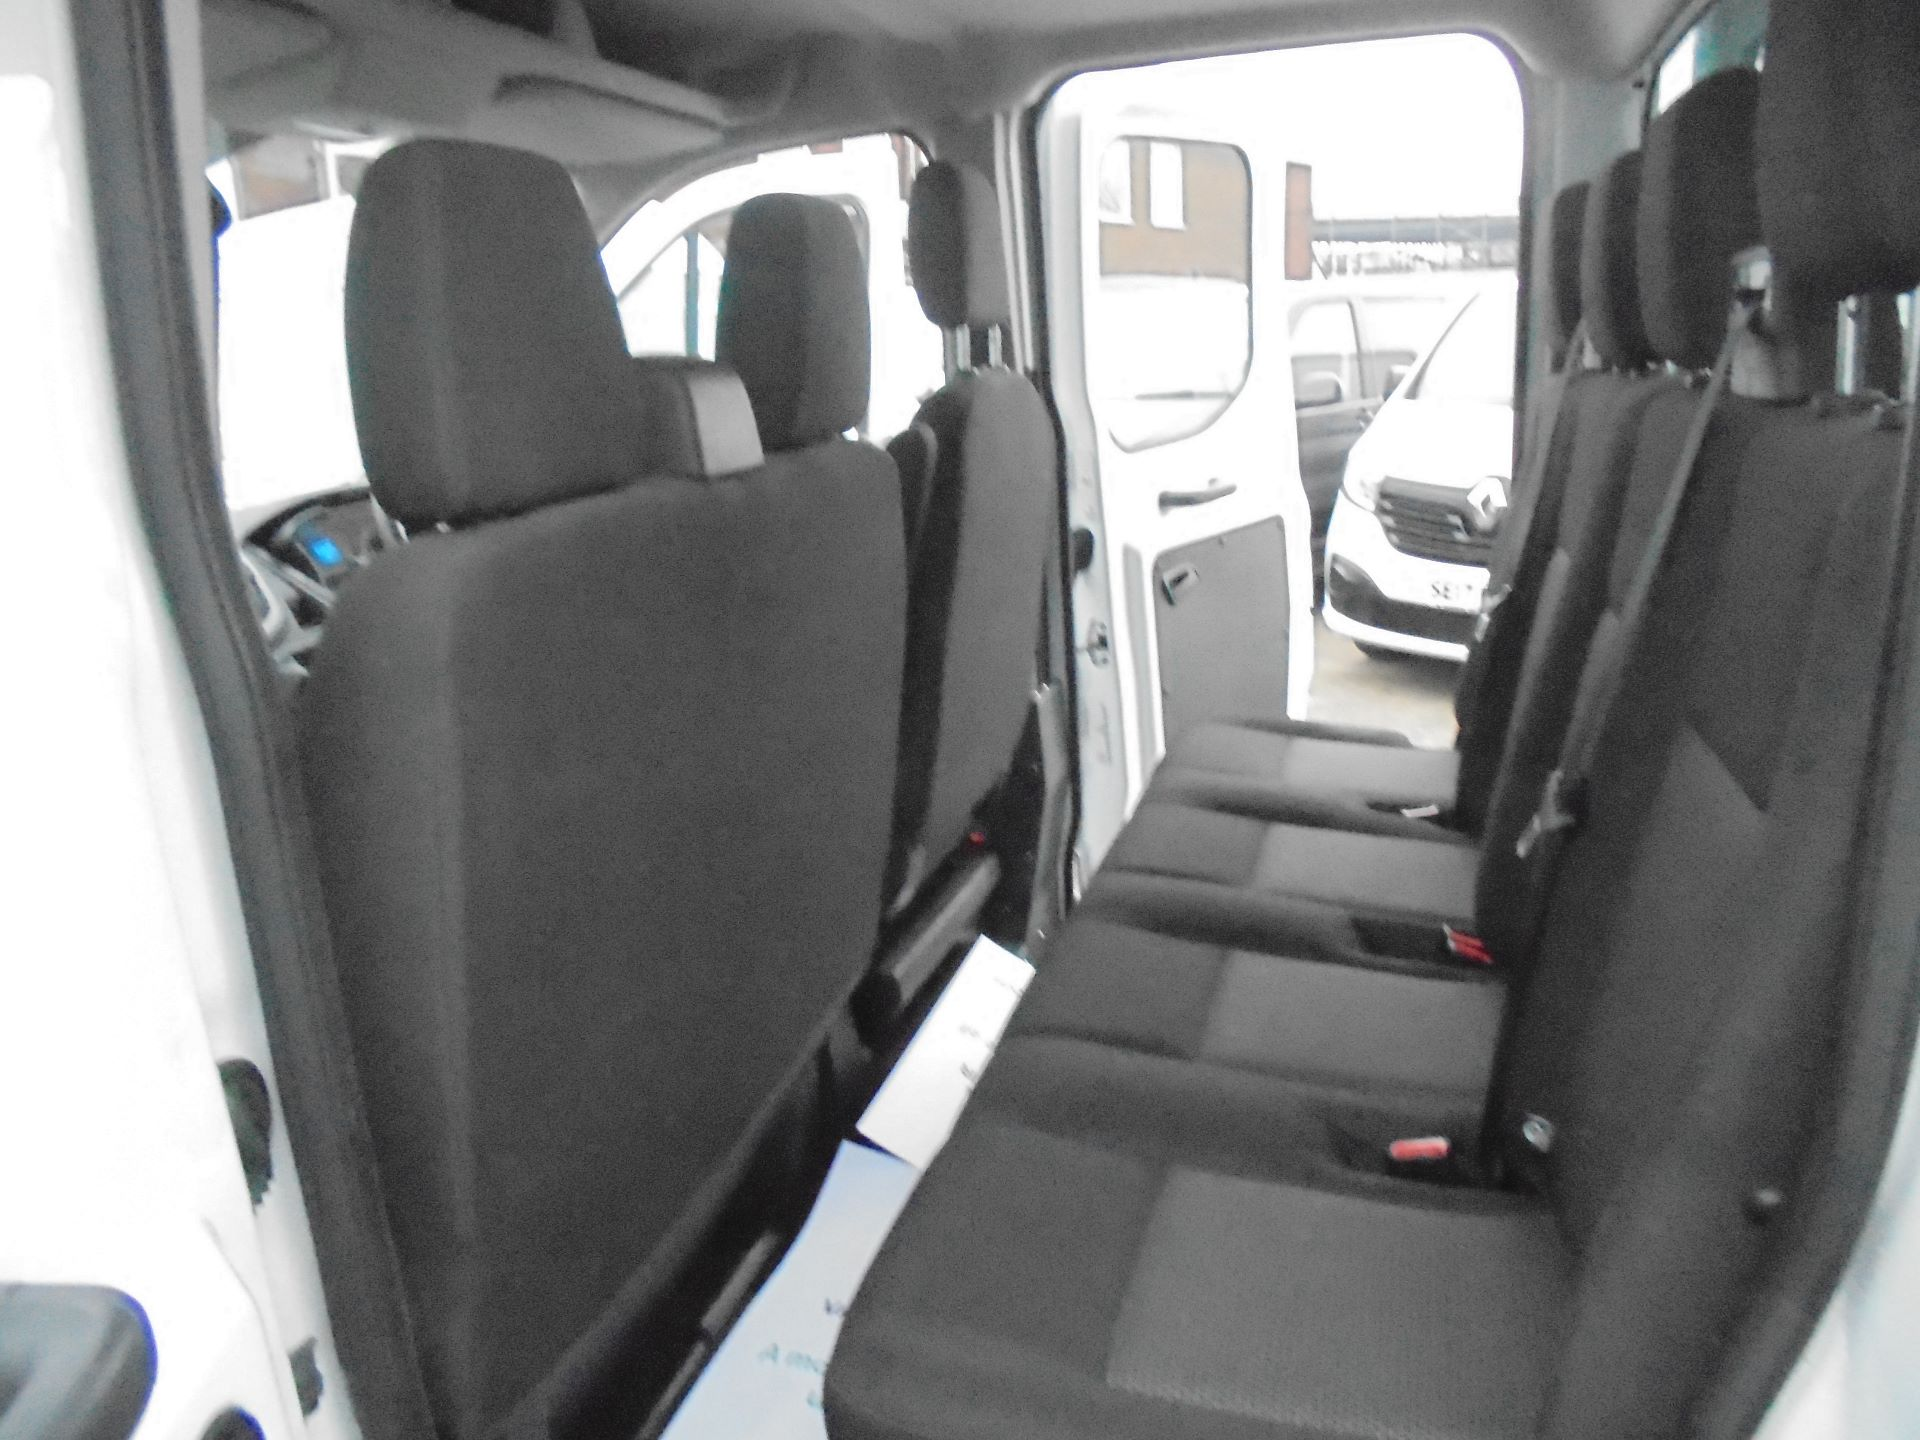 2017 Ford Transit 350 L3 DOUBLE CAB TIPPER 130PS EURO 5 (BL67PYZ) Image 22